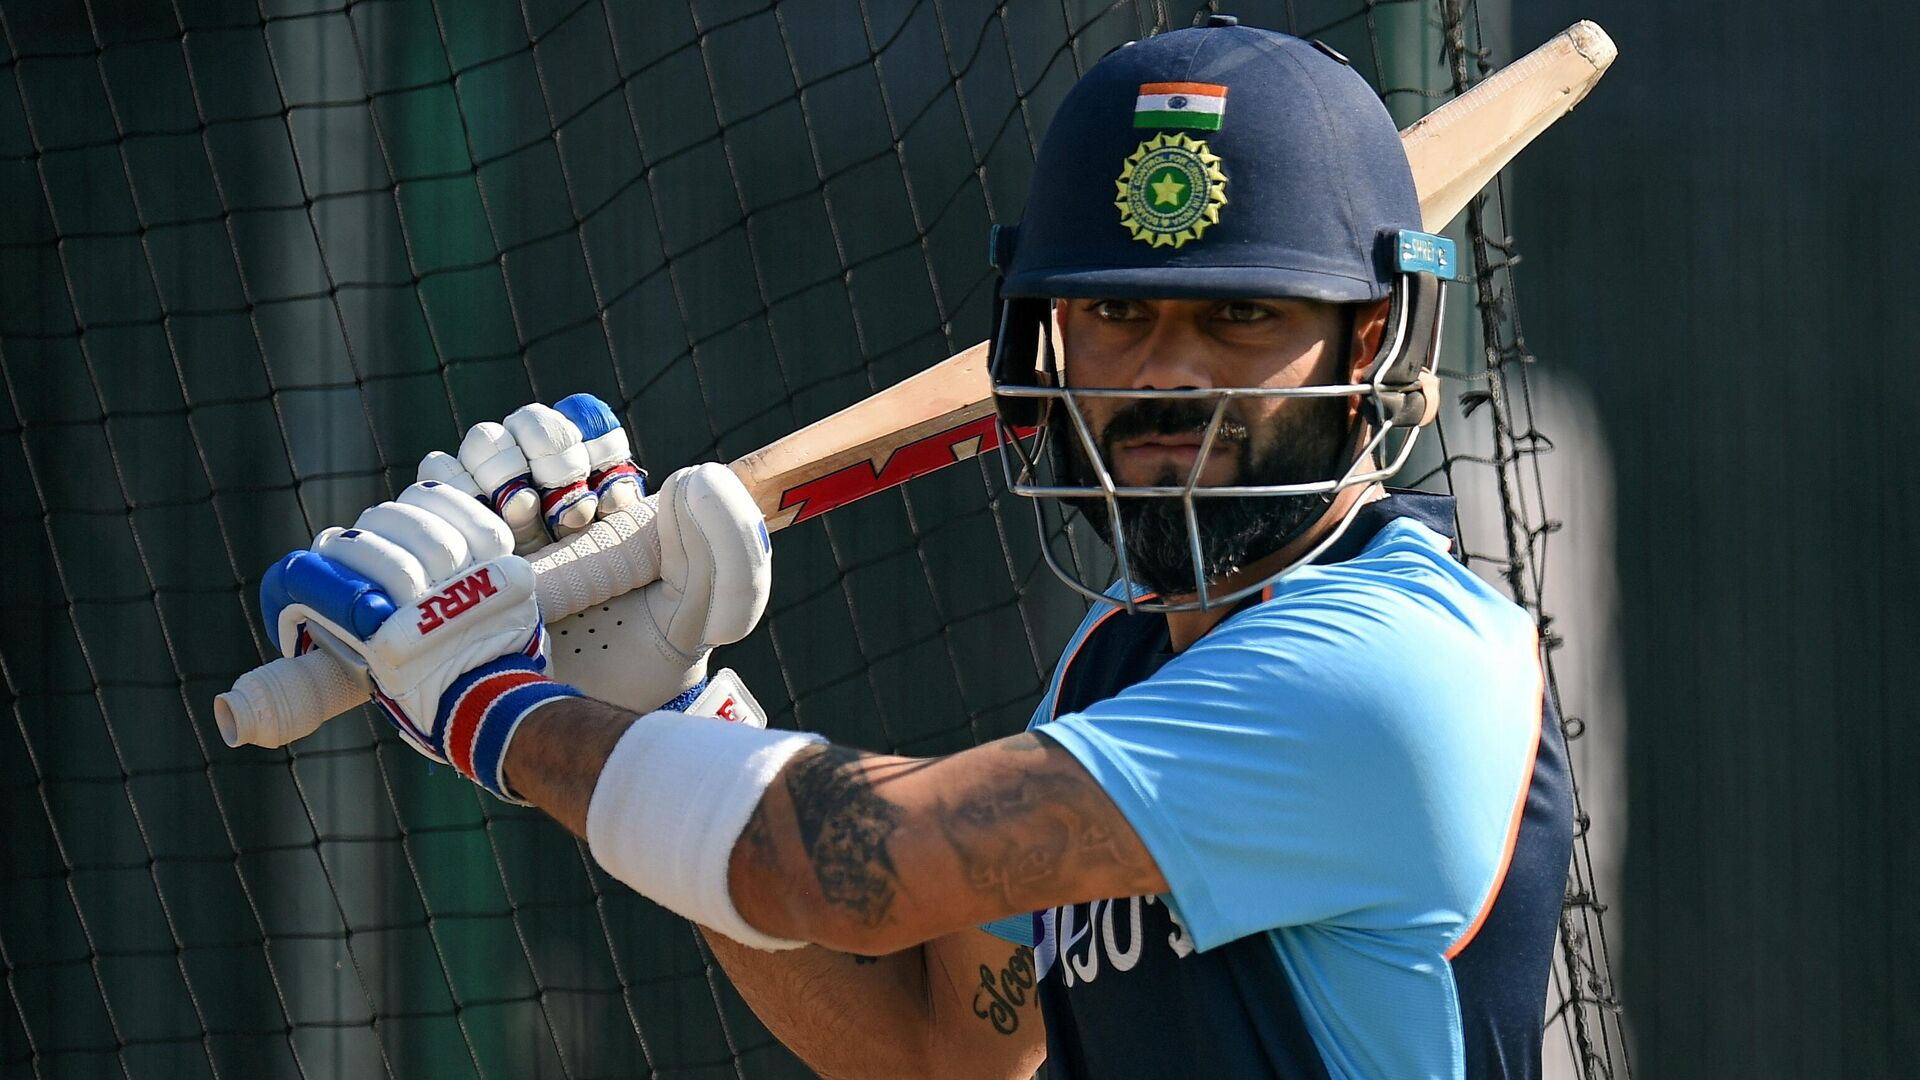 India's captain Virat Kohli attends a team practice session ahead of the fifth cricket Test match between England and India  at Old Trafford in Manchester, north-west England on September 8, 2021 - Sputnik International, 1920, 16.09.2021